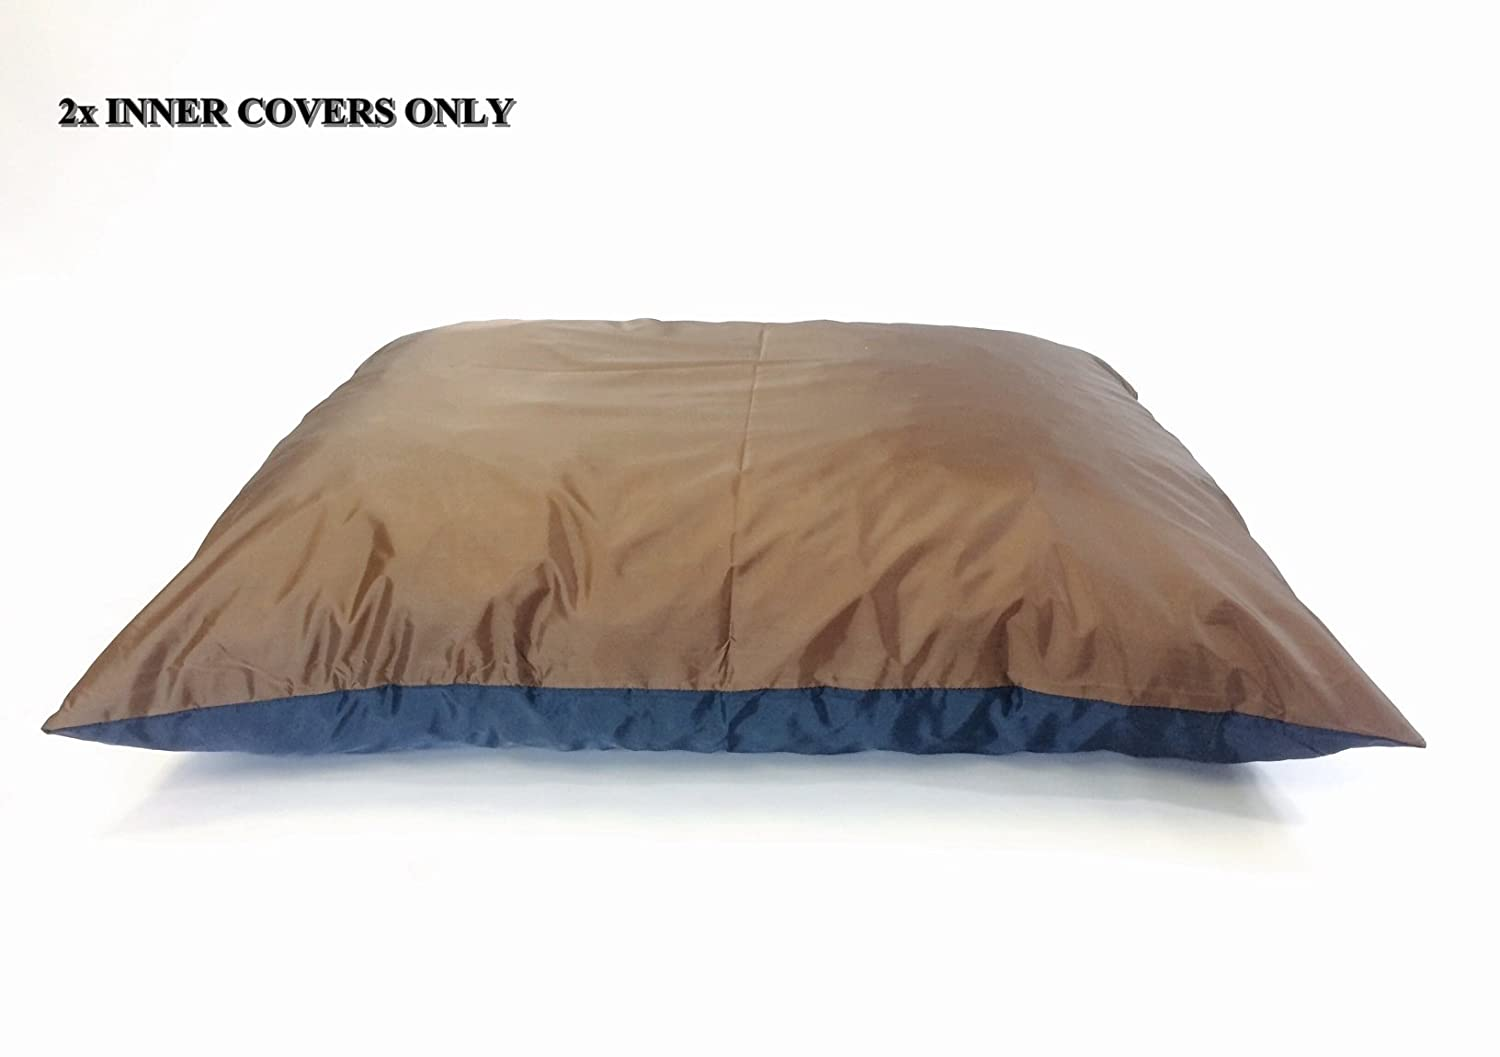 "2 Quantity of 47""x29"" Large size Top Brown Full Waterproof Bottom Blue Breathable Water Resistant Flat Dog Bed Liner - Internal Cover Case"